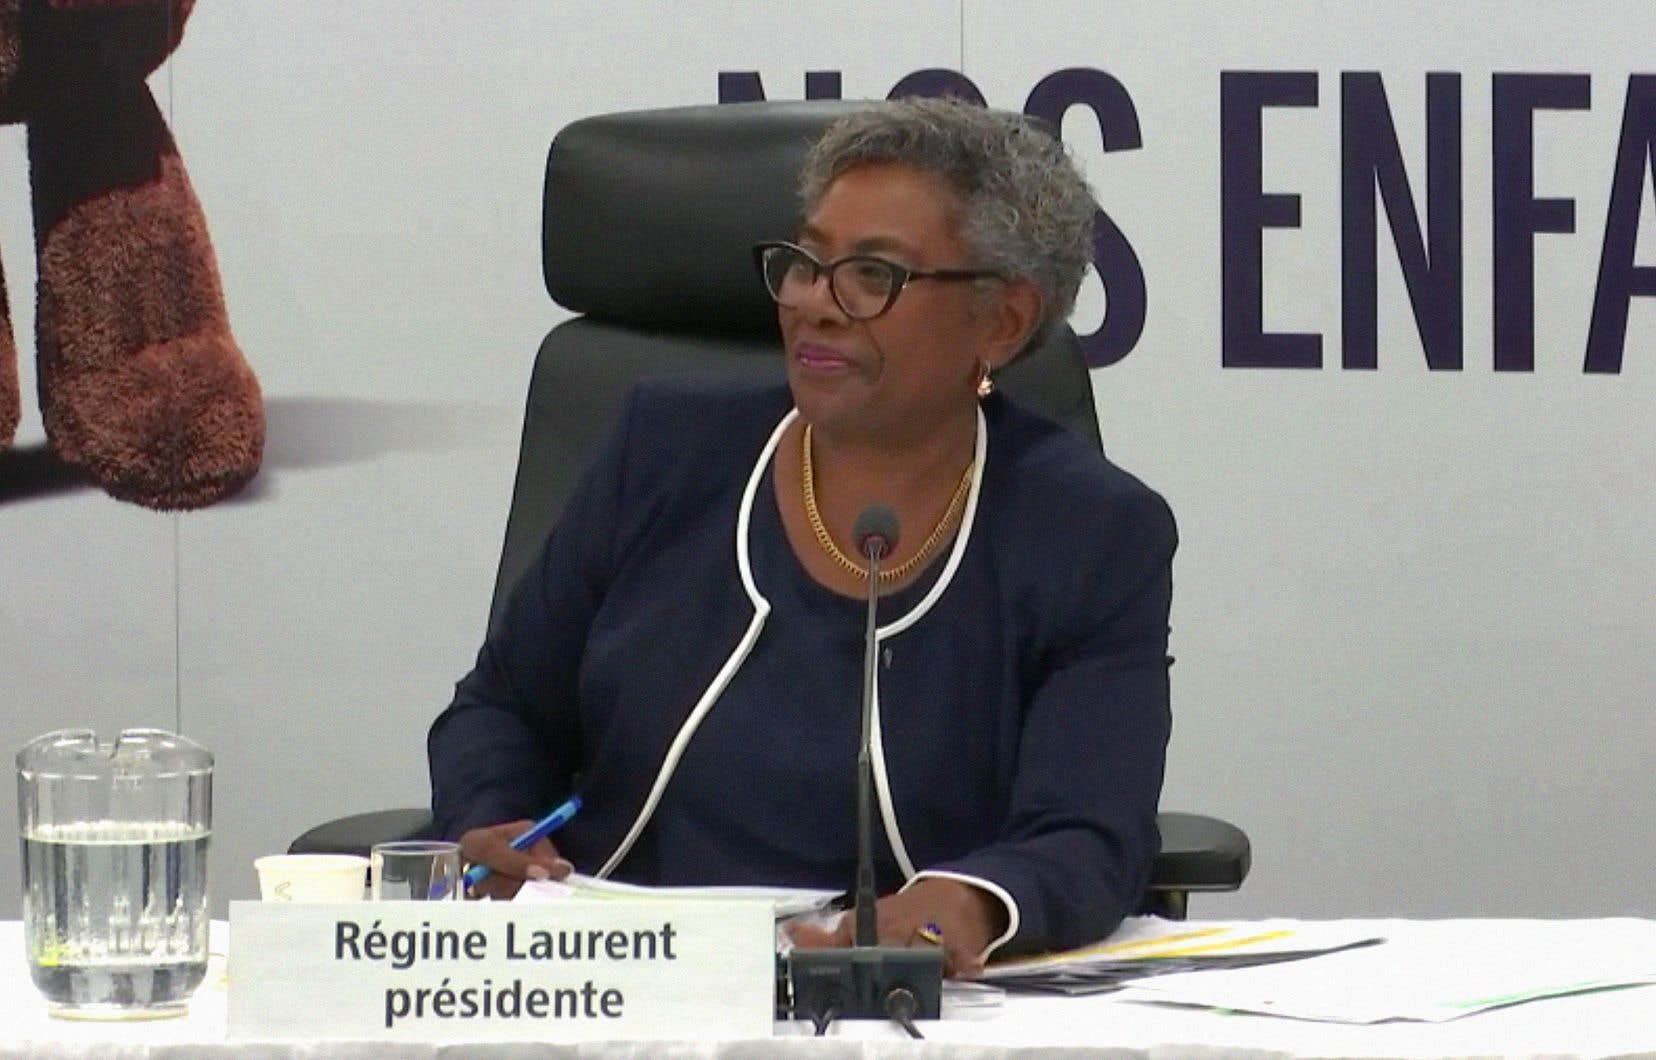 La présidente de la commission, Régine Laurent